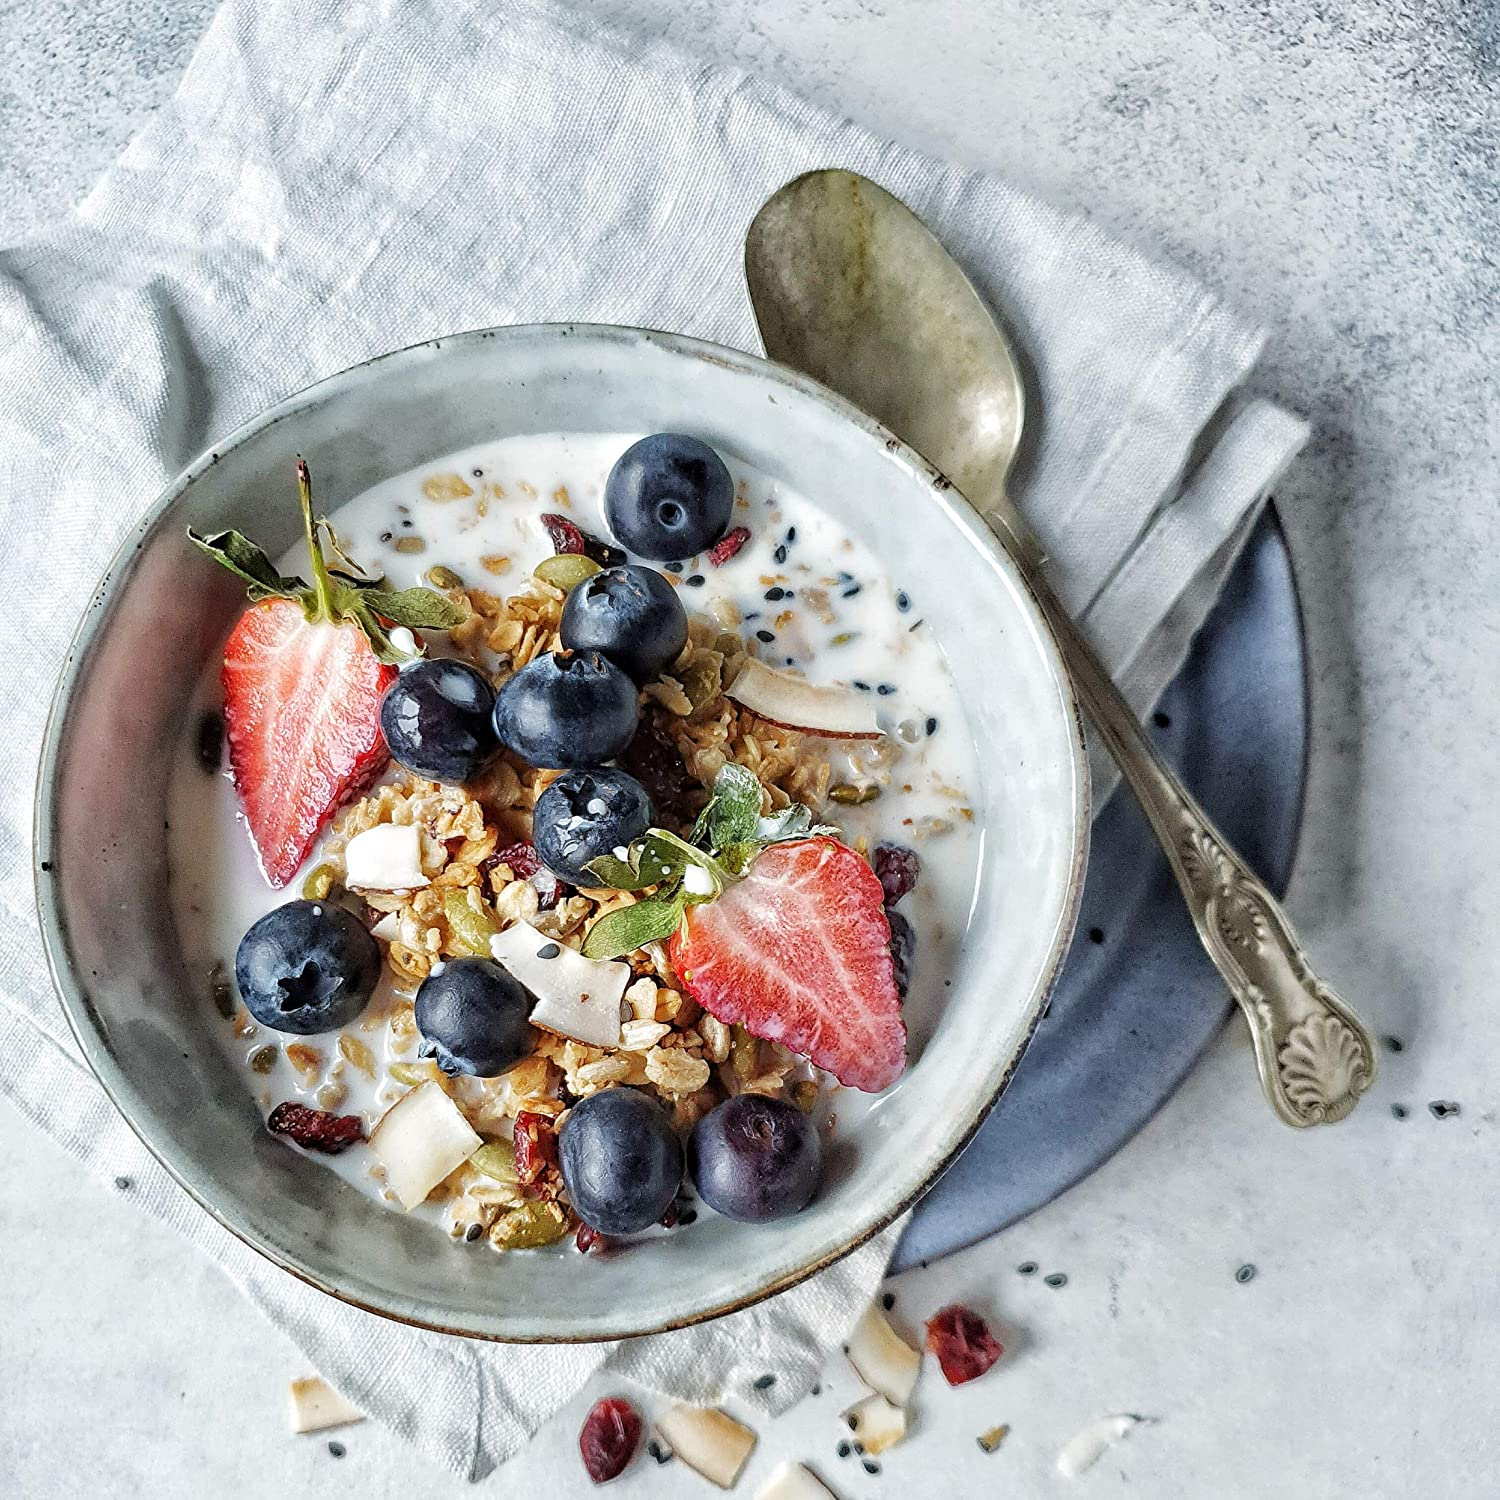 Cranberry, Coconut and Chia Seed Granola 1 Kg - No Gluten, Wheat, Dairy, Refined Sugar or Salt -